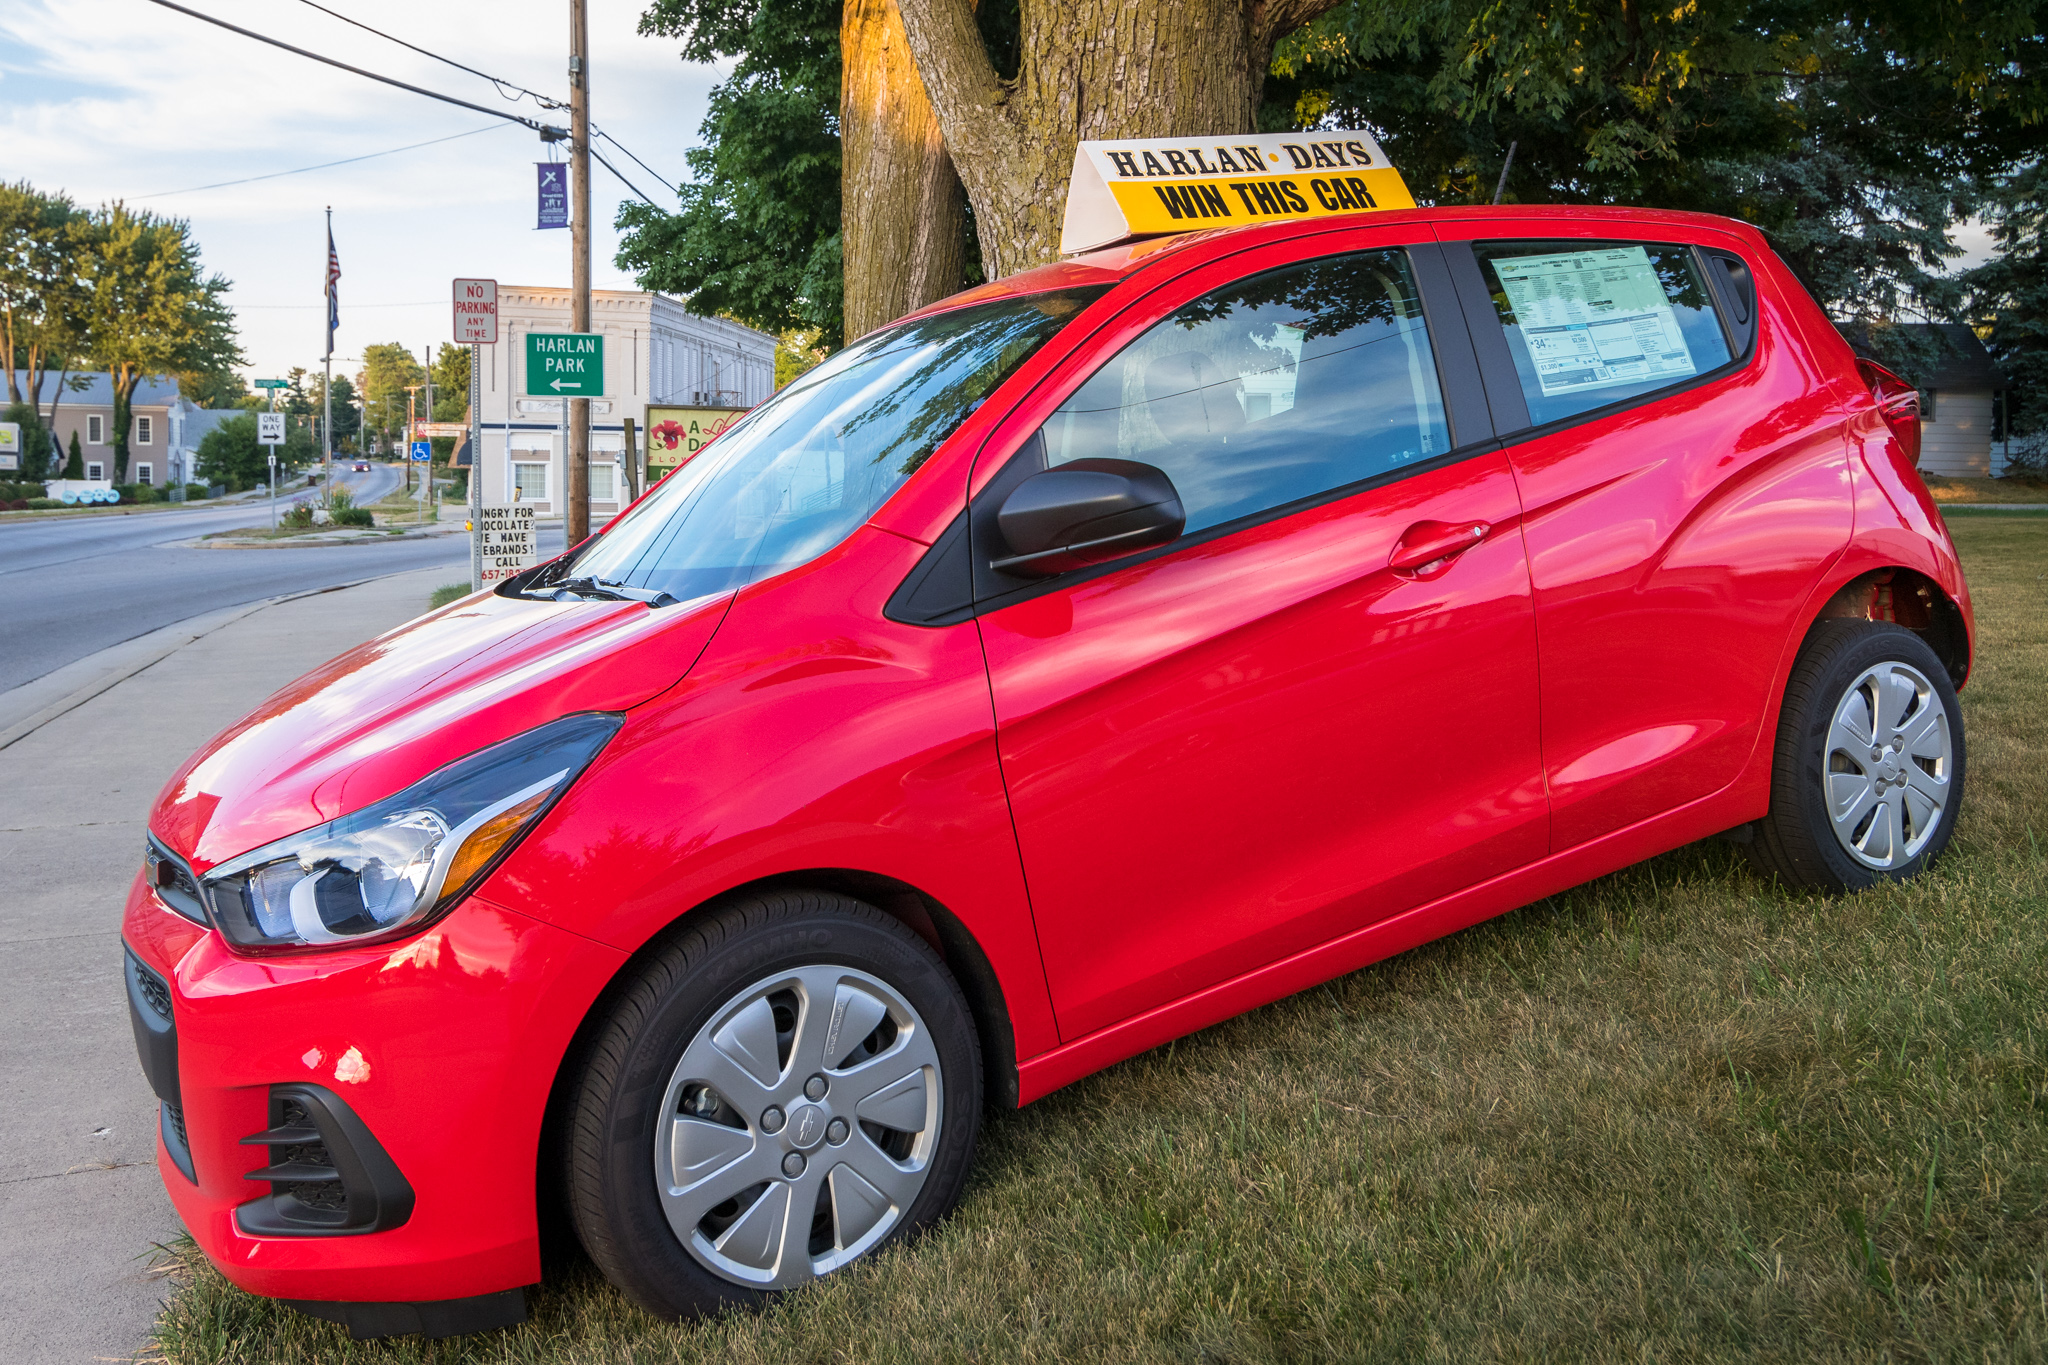 information about the harlan days raffle harlan days. Cars Review. Best American Auto & Cars Review